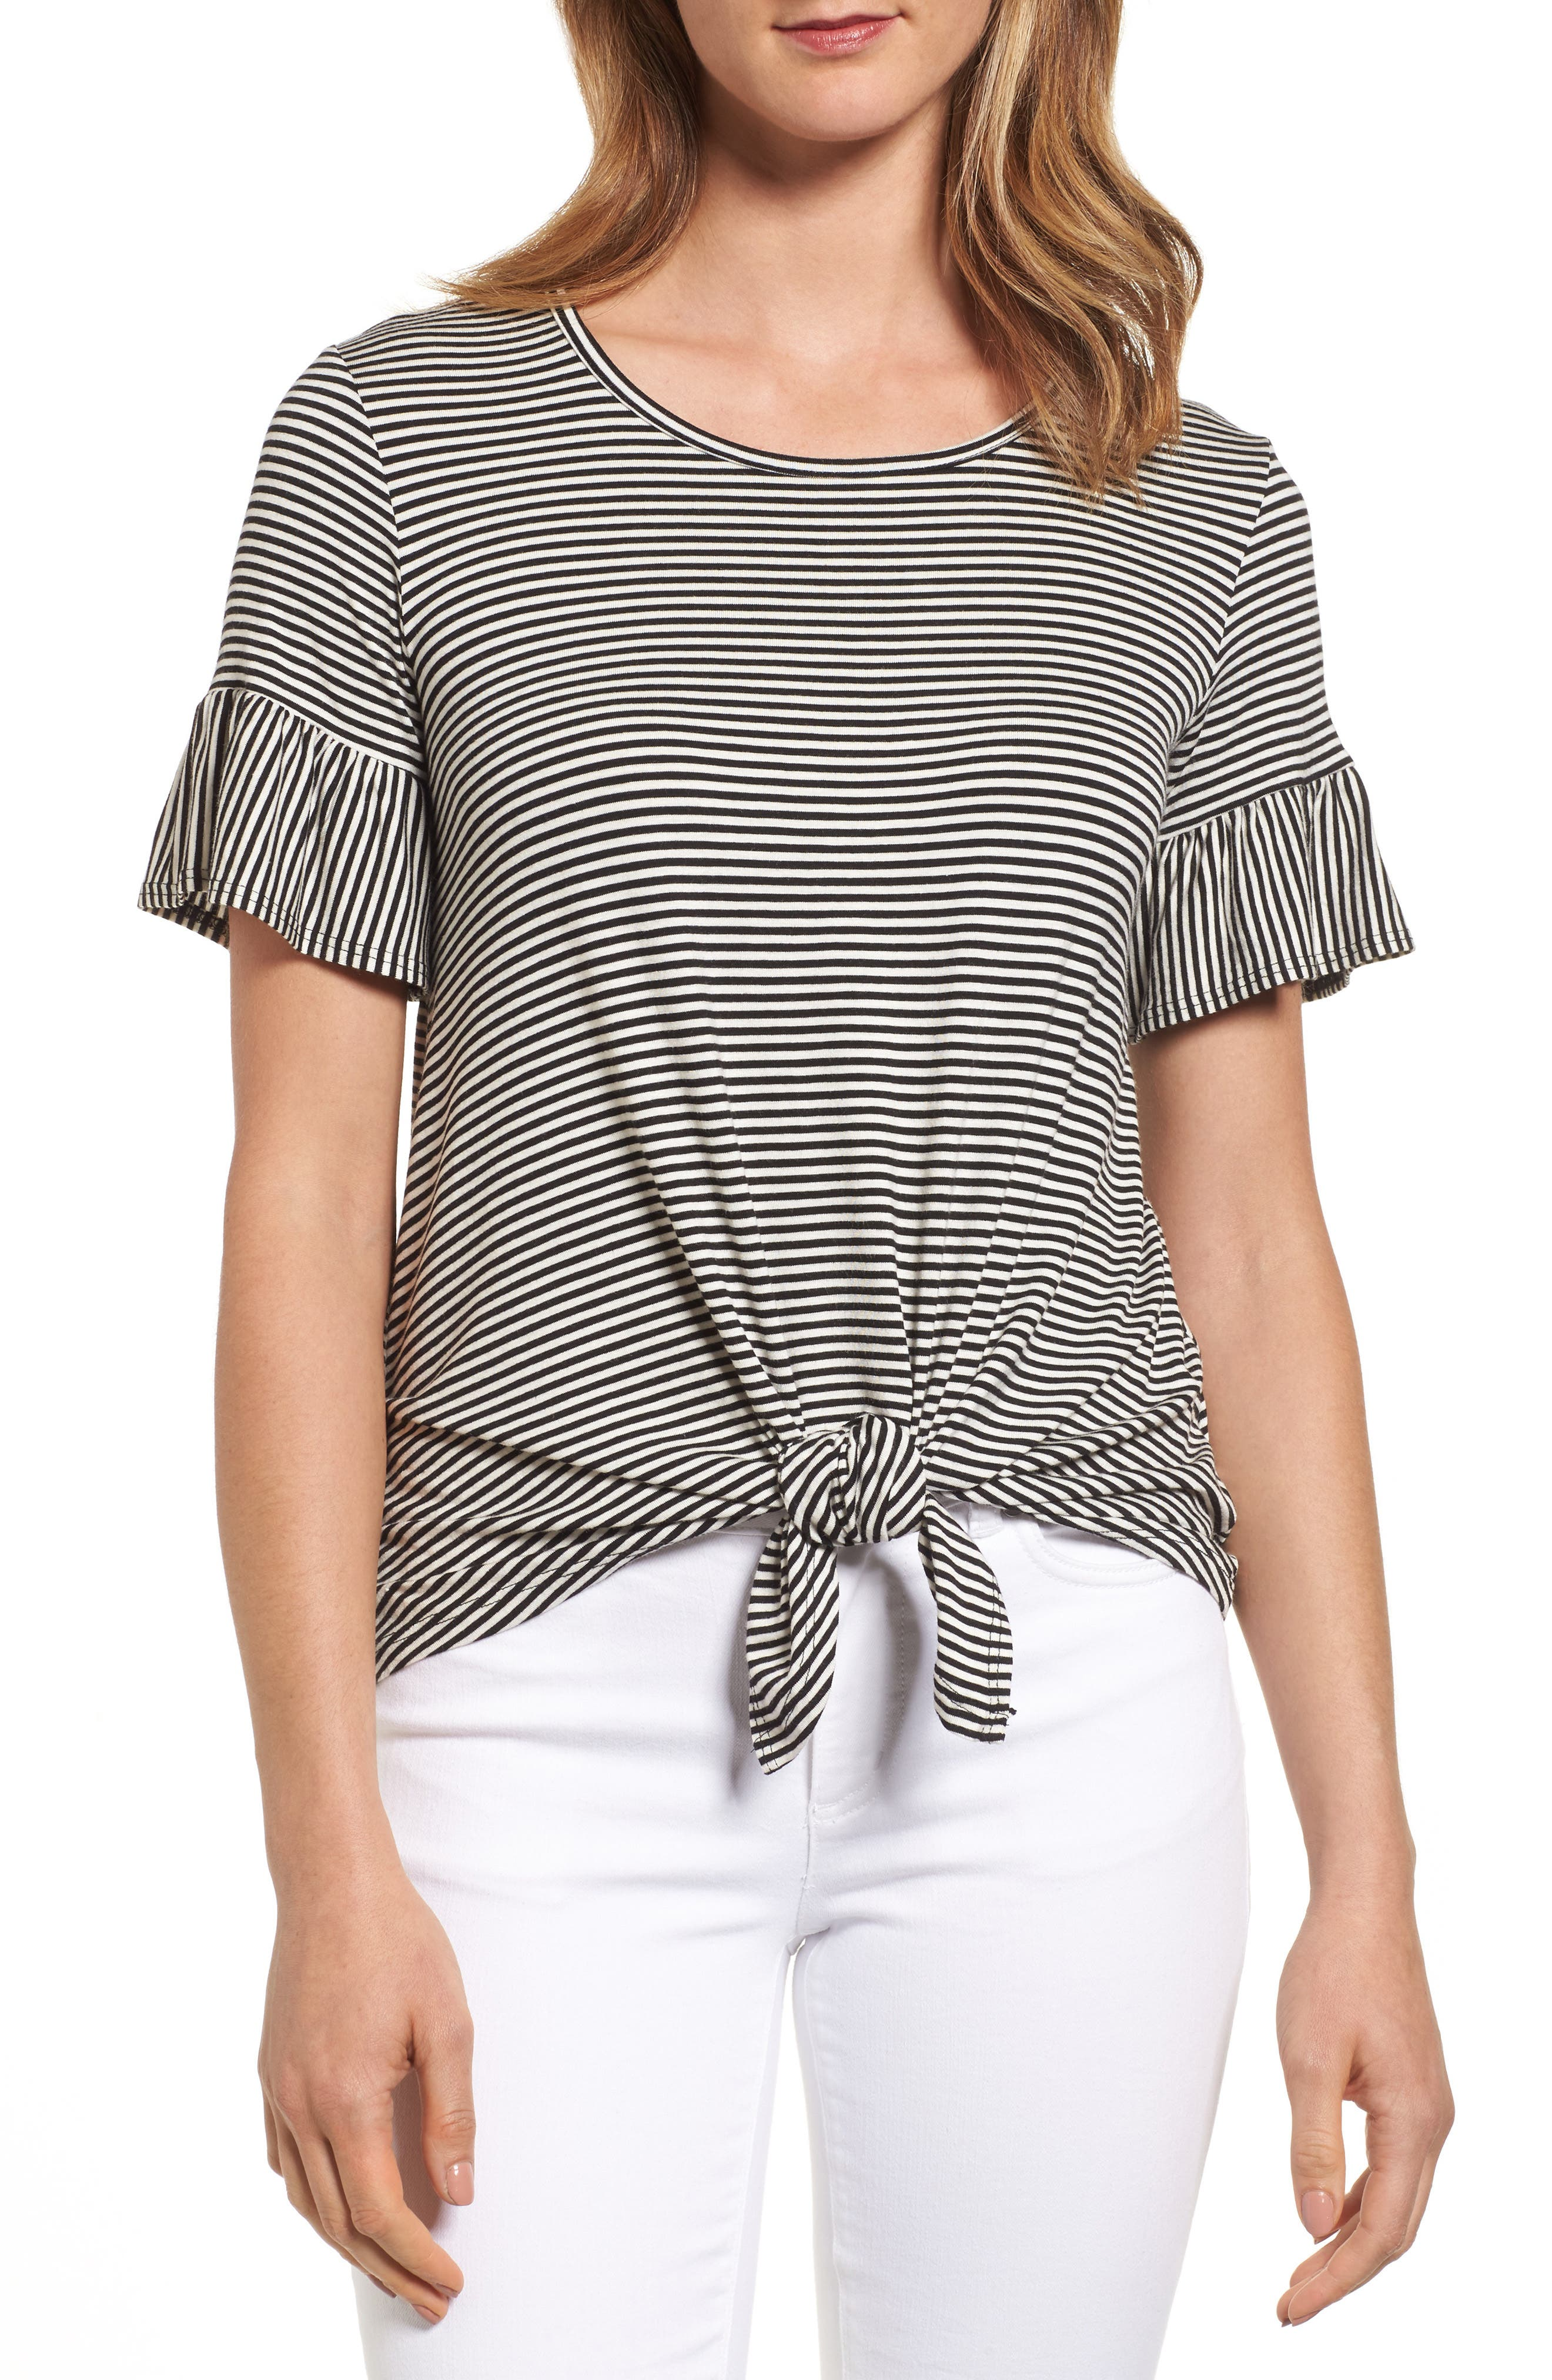 Alternate Image 1 Selected - Bobeau Bell Sleeve Tie Front Top (Regular & Petite)